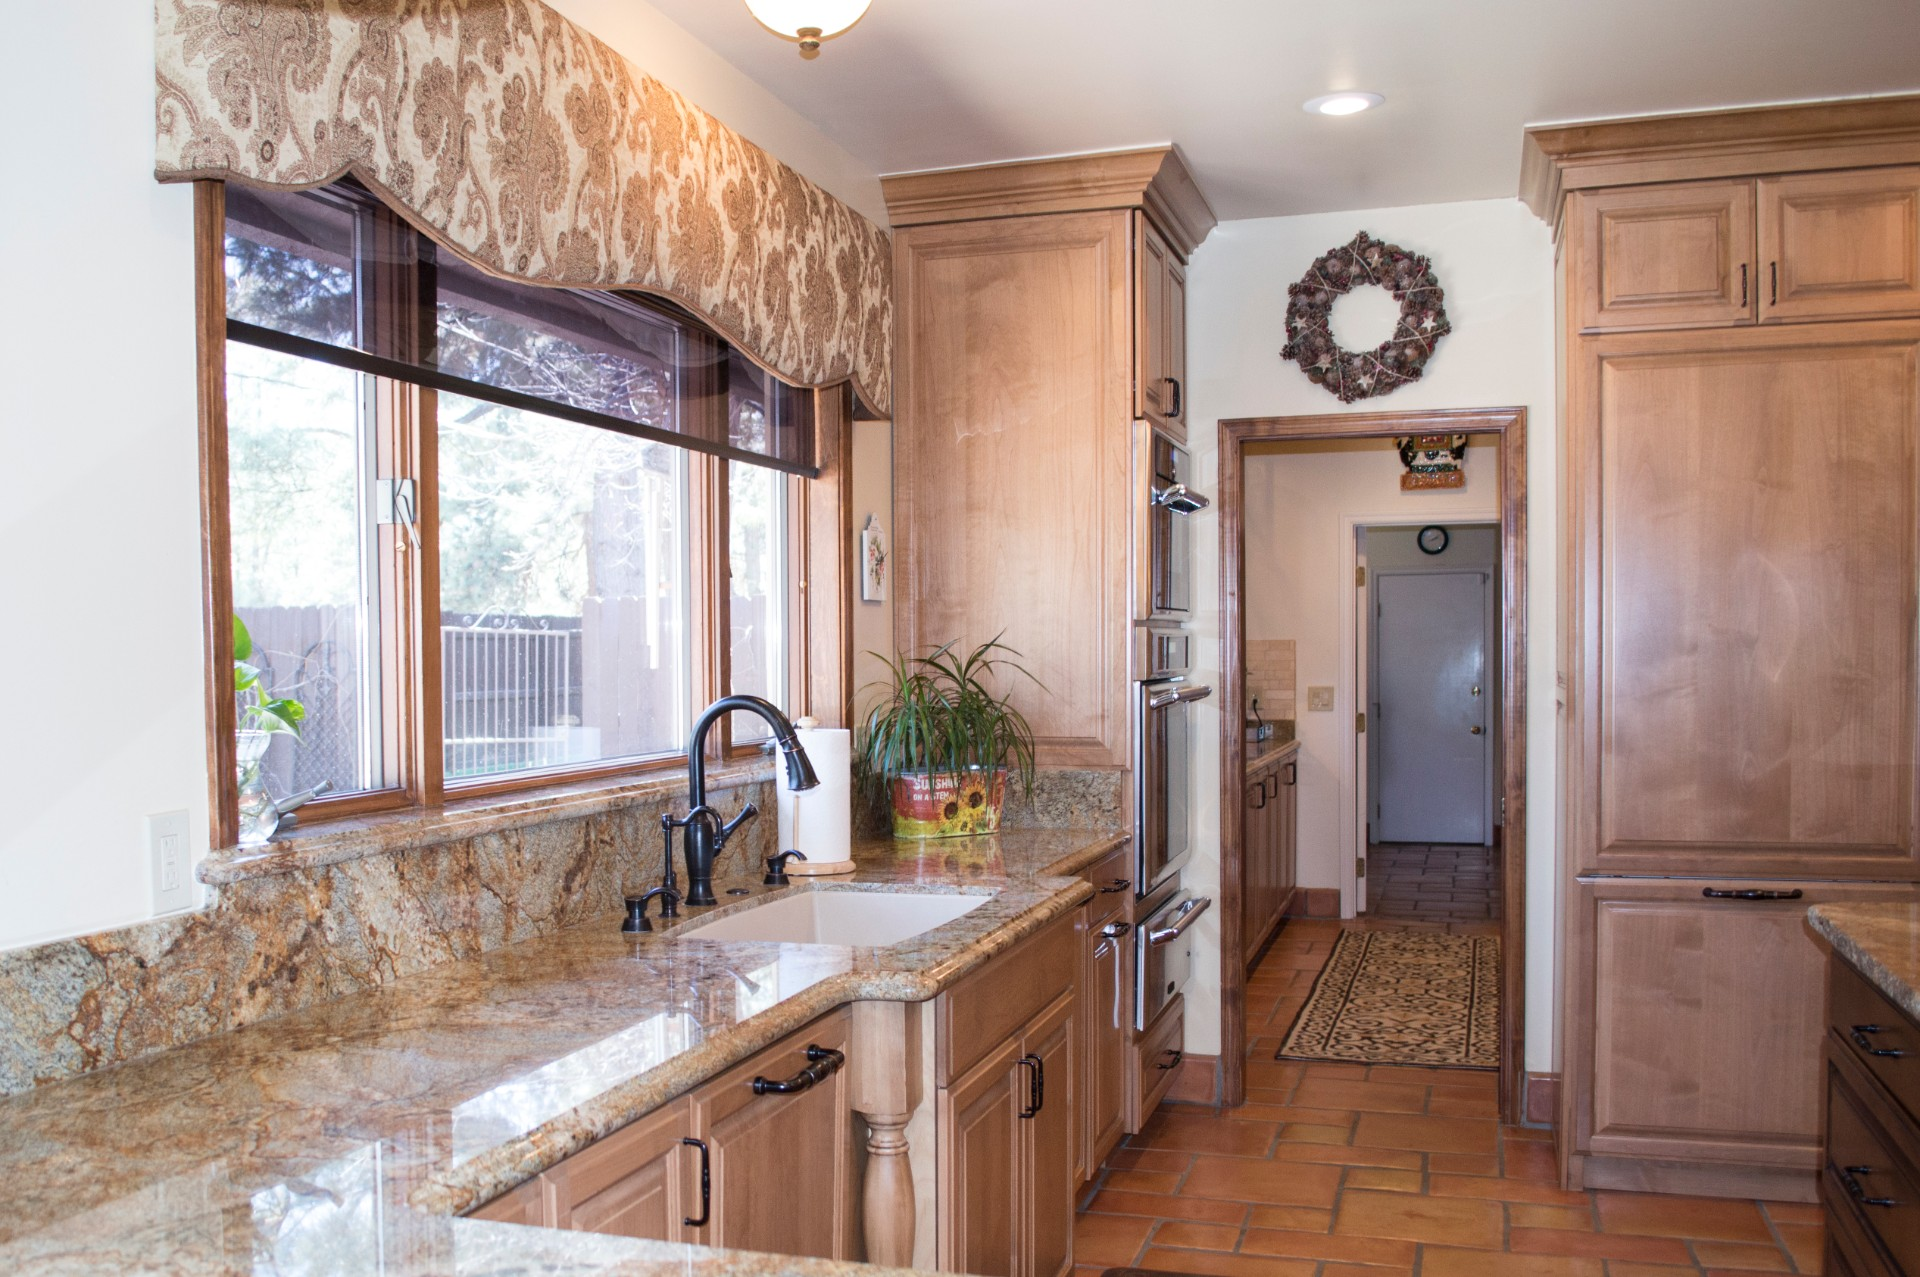 Custom bathroom in the master bedroom of a residential home.